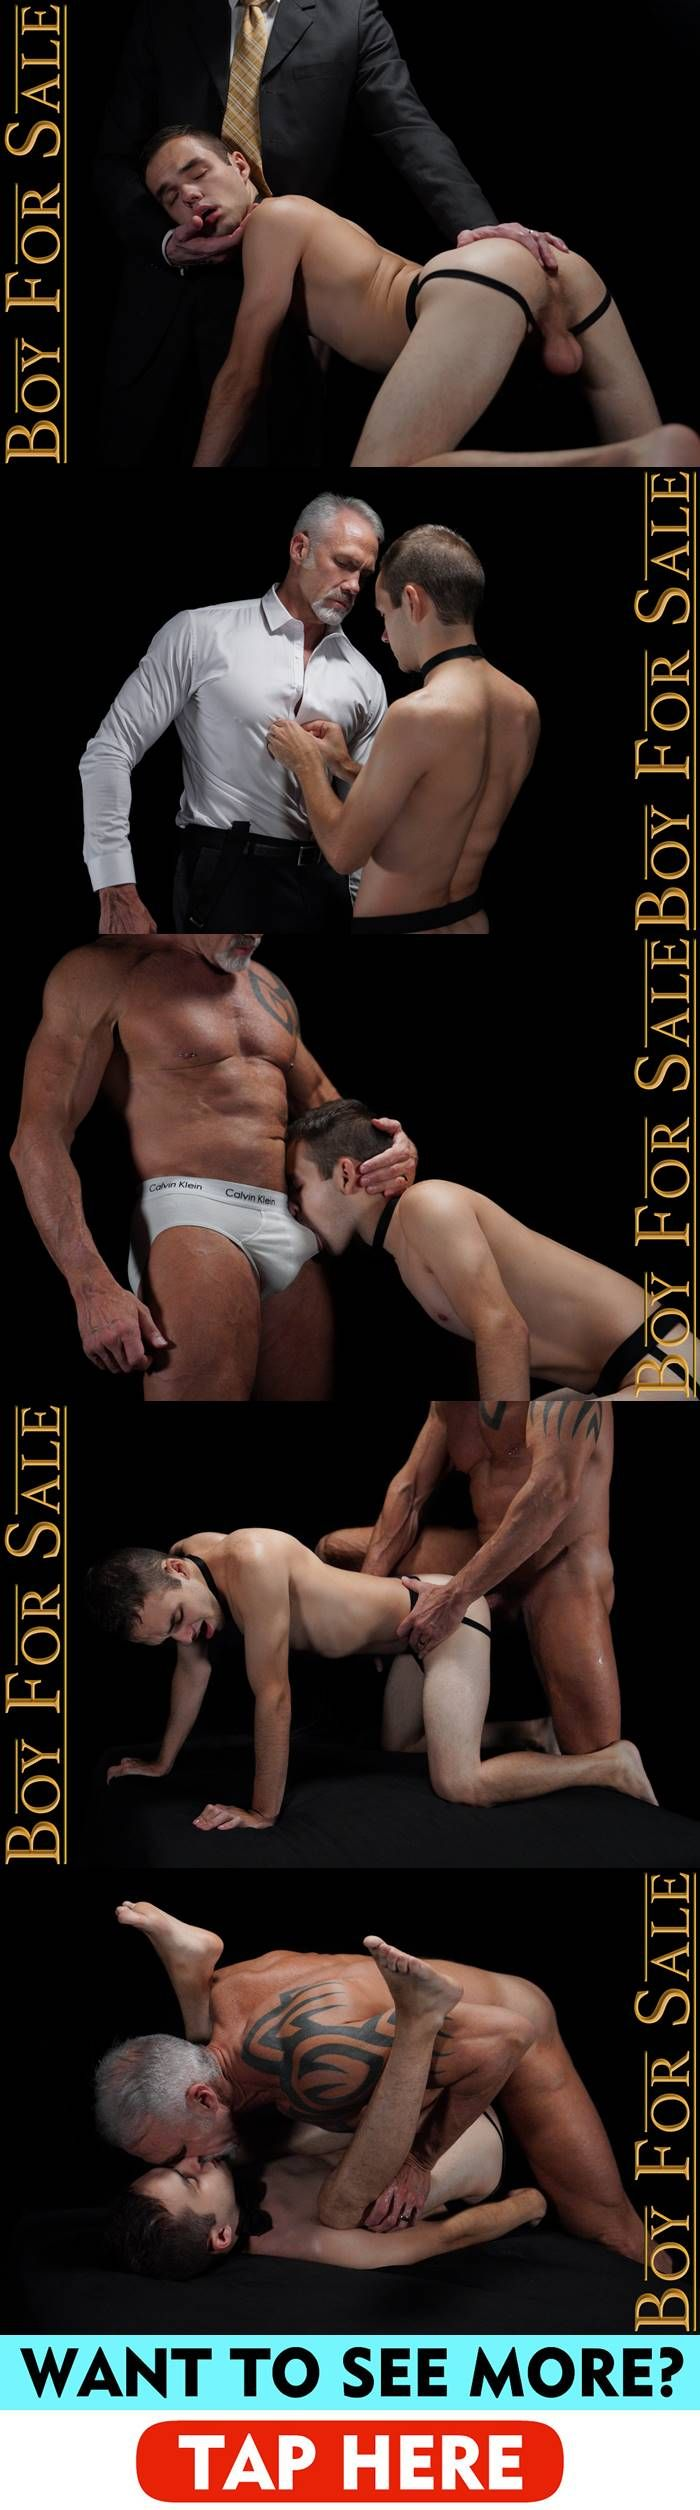 Boy For Sale – Boy River: Chapter 3 with Dallas Steele